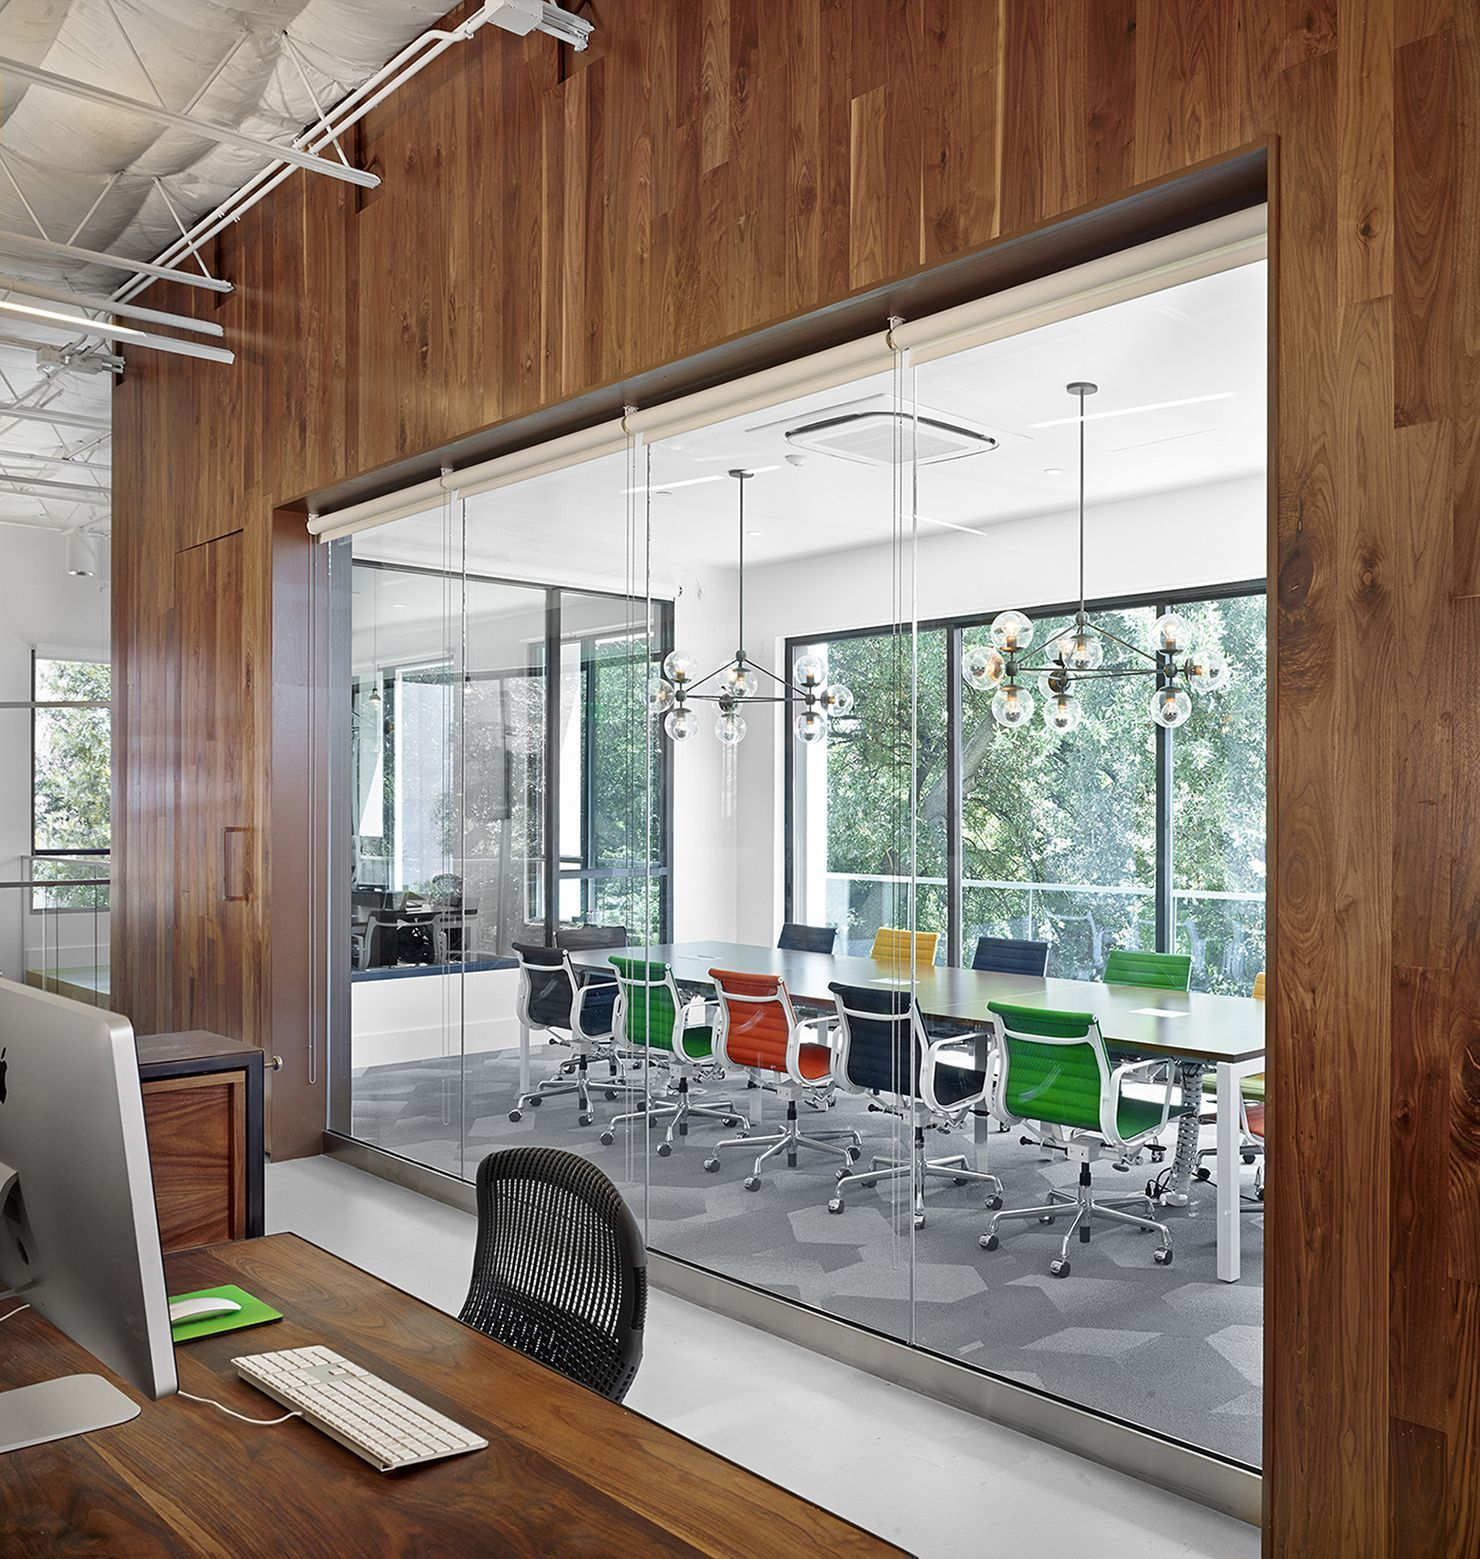 Image result for meeting room glass INTERIORS CORPORATE